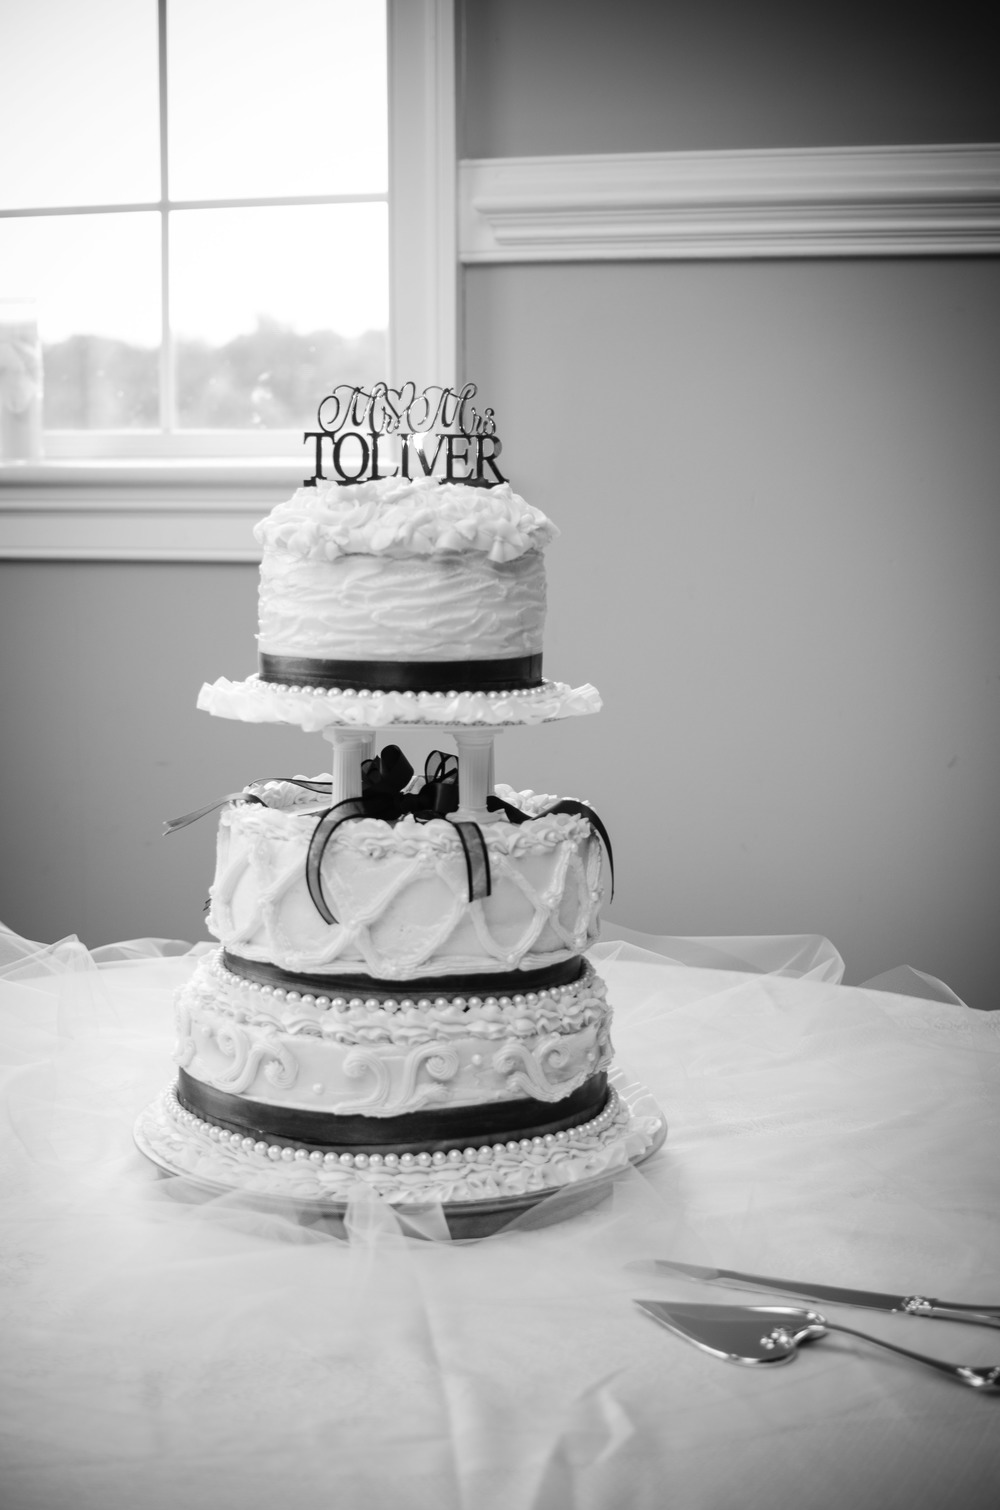 ToliverWedding-19.jpg